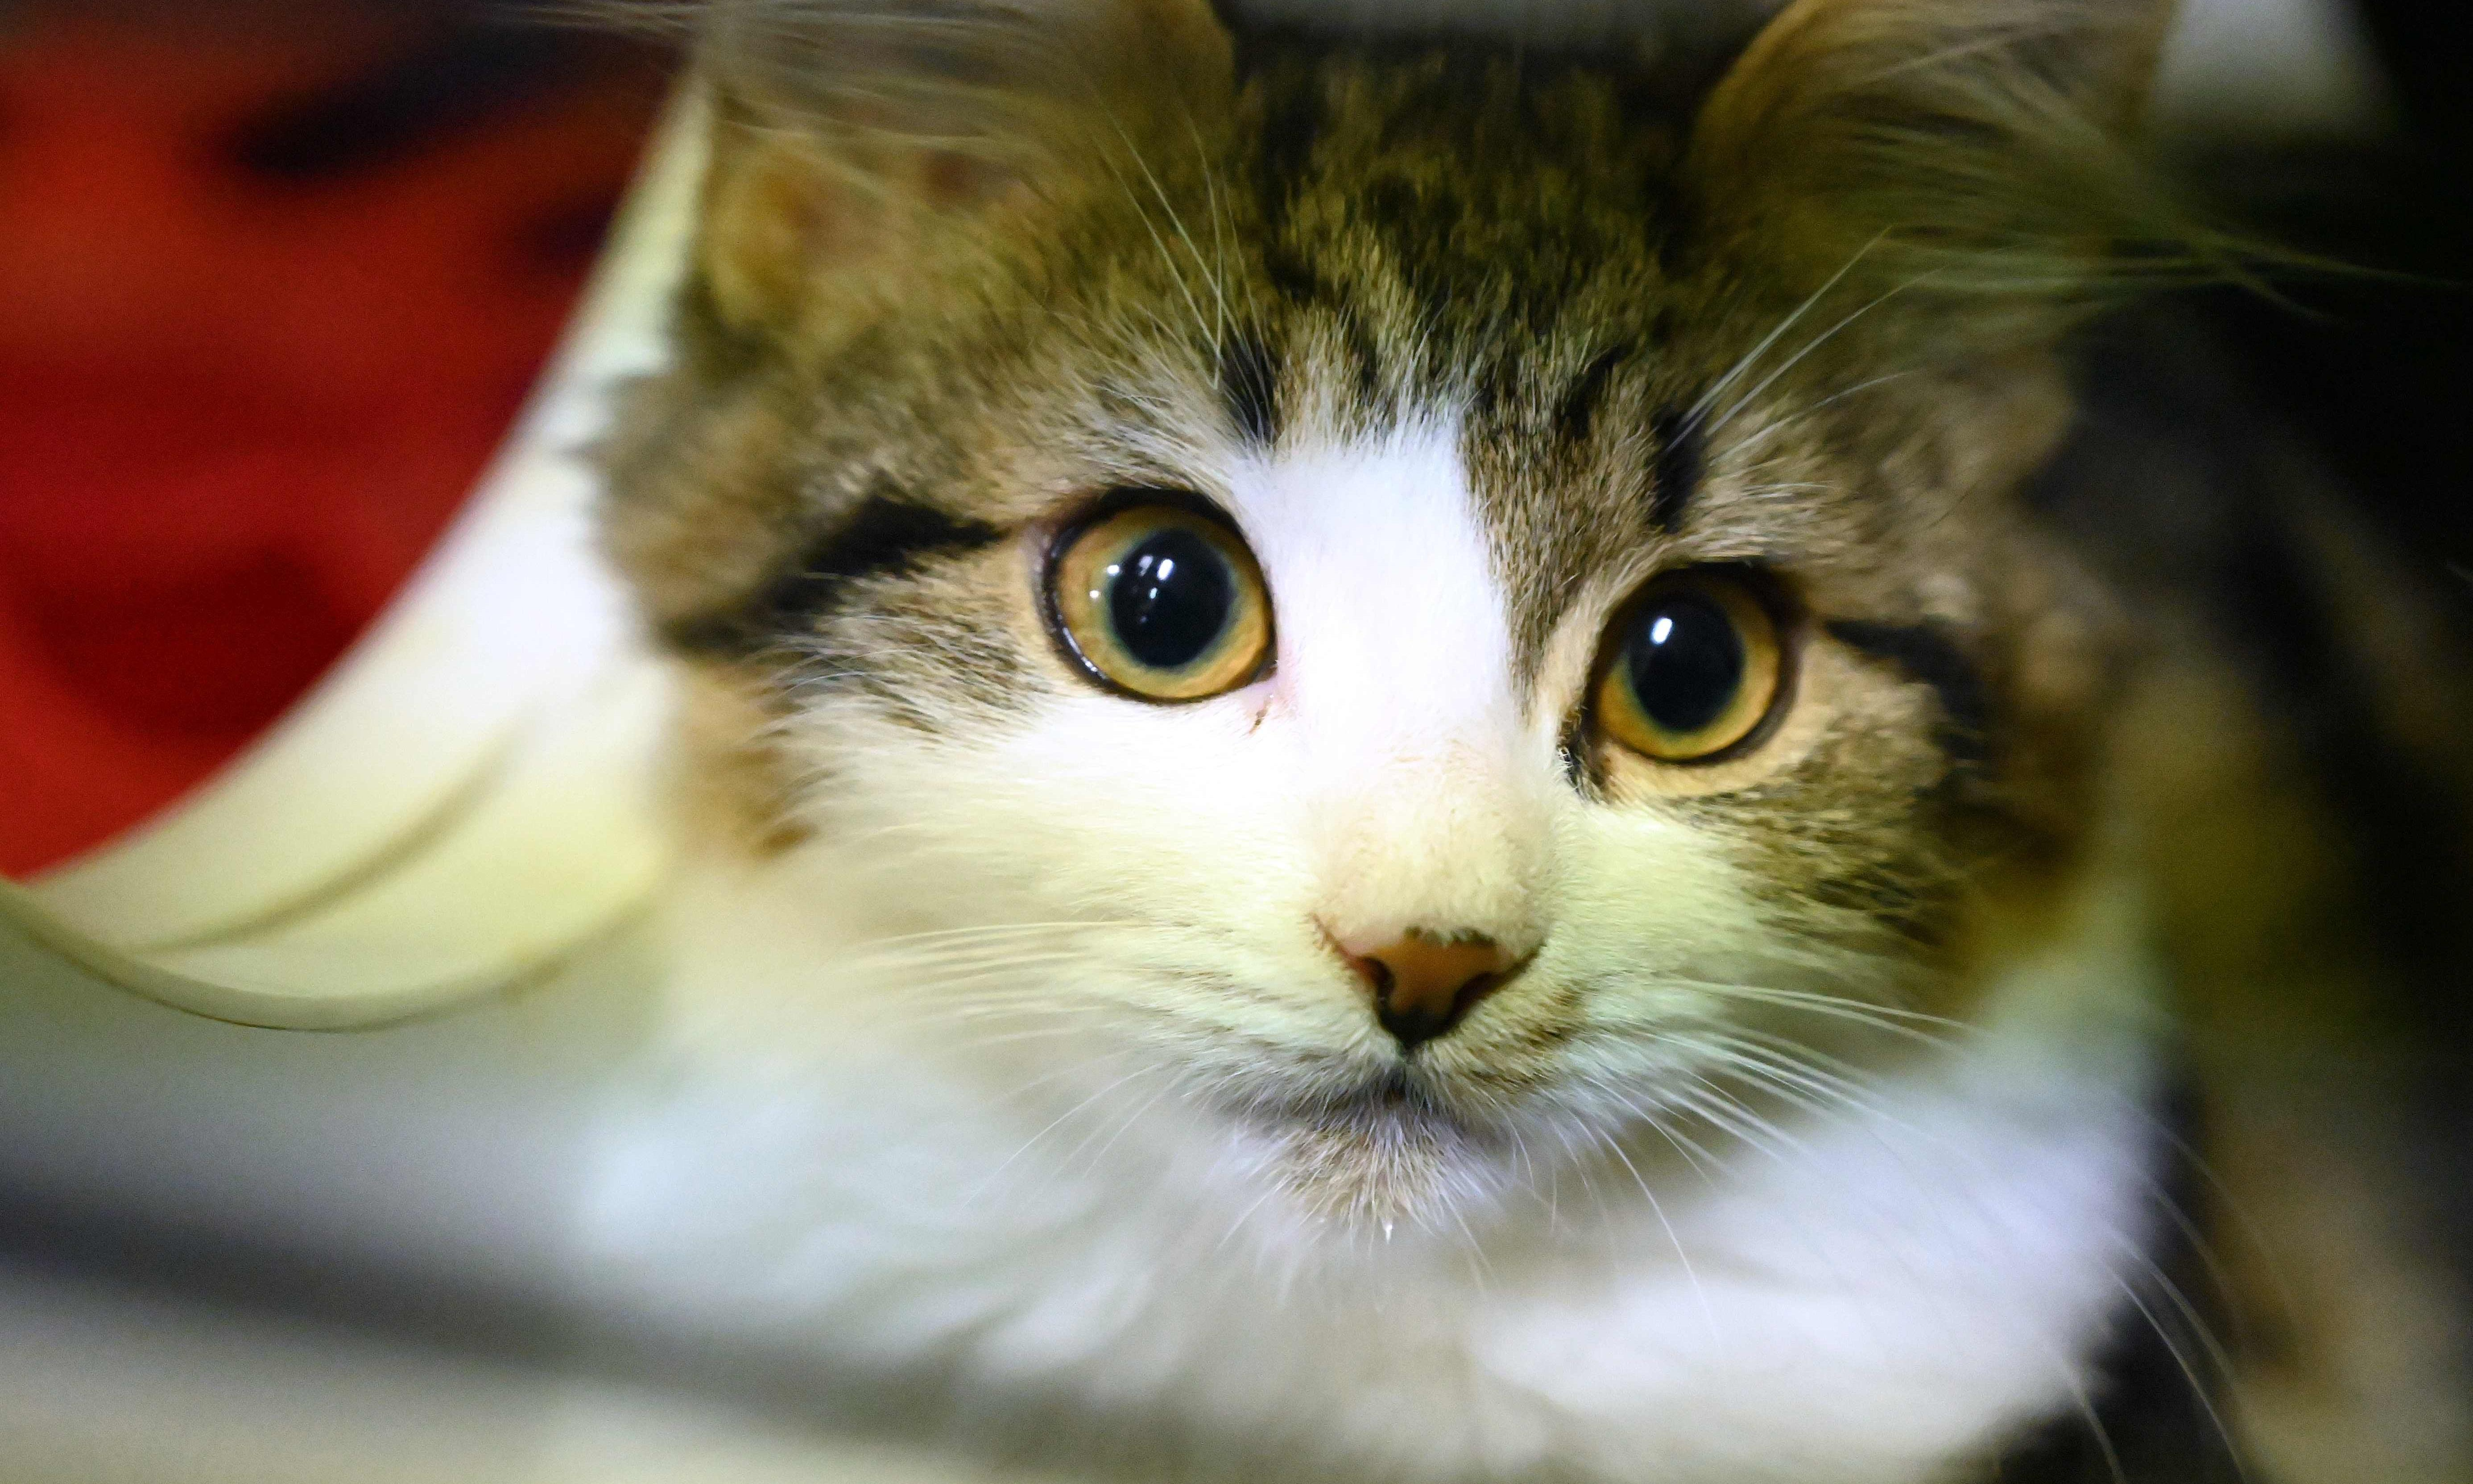 Cats can infect each other with coronavirus, Chinese study finds